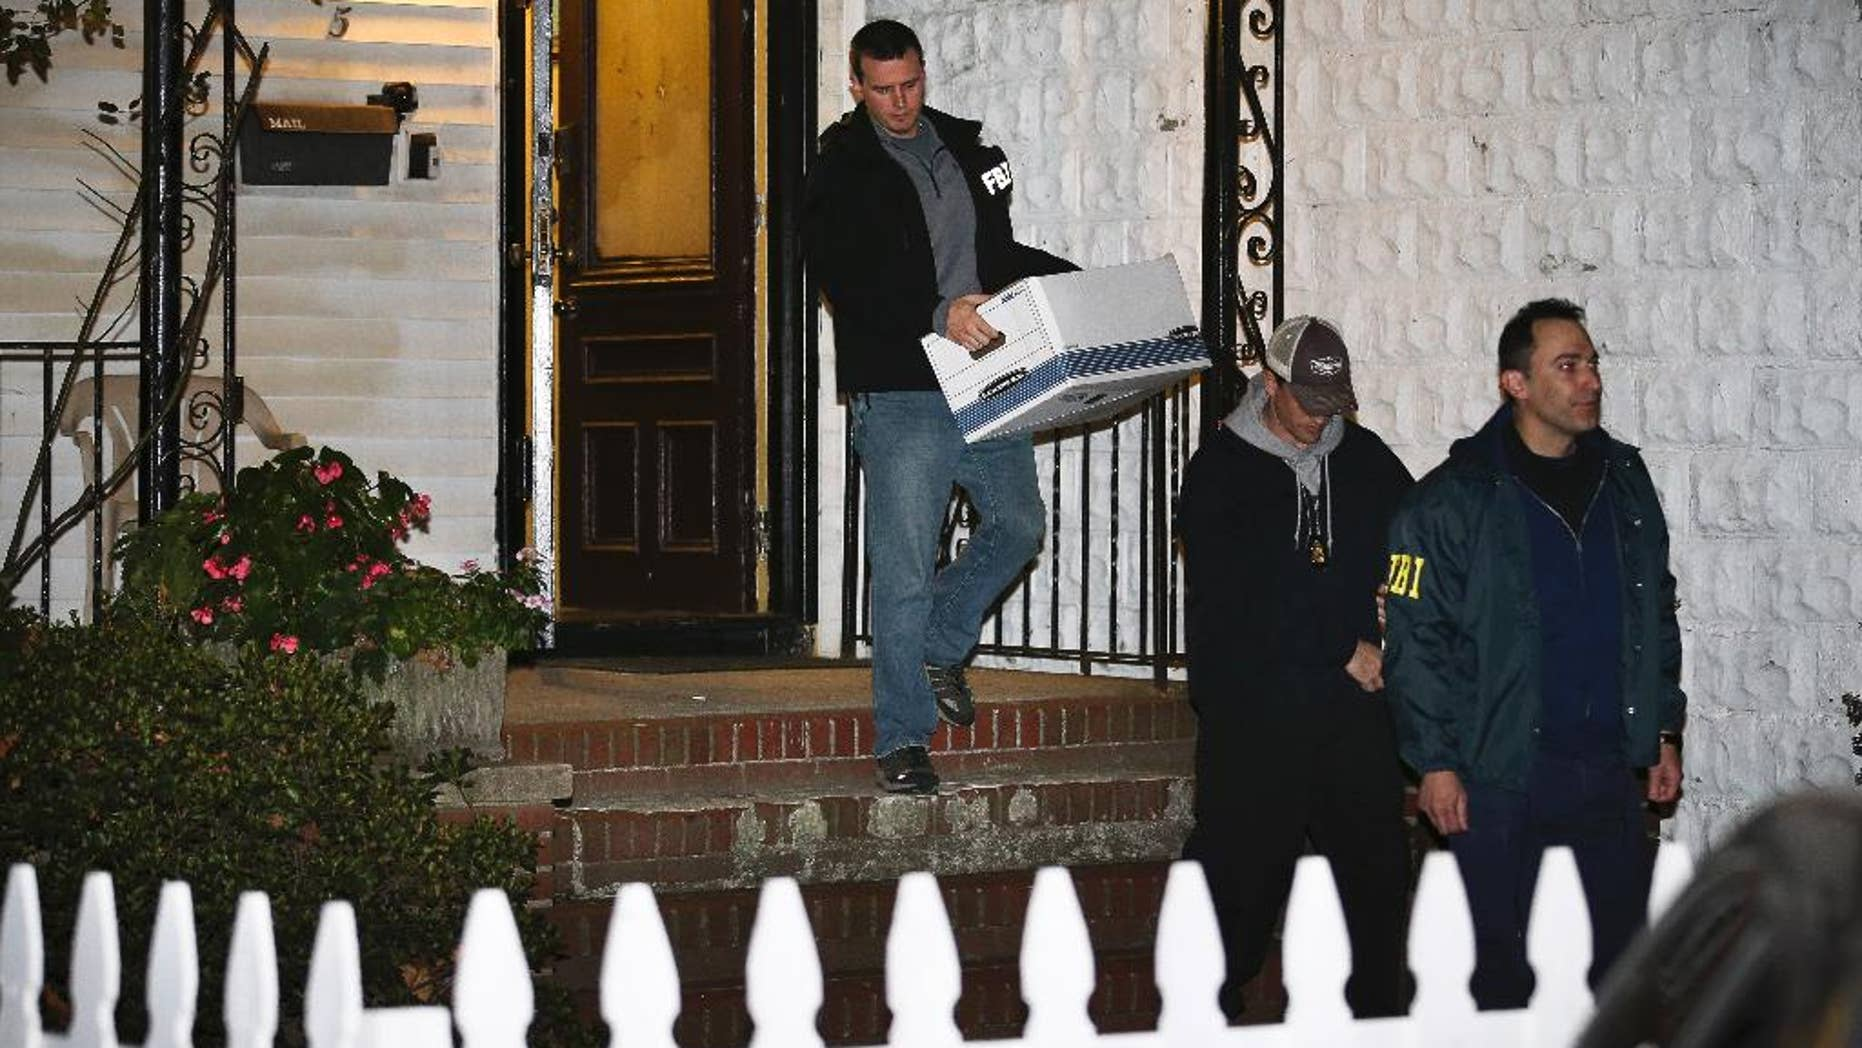 FILE - In a Thursday, Oct. 10, 2013 file photo, FBI agents remove evidence from the Brooklyn residence of Rabbi Mendel Epstein during an investigation, in New York. Several defendants, including Epstein and another rabbi, are accused by the FBI of plotting to kidnap and beat a man to force him to grant a religious divorce. Epstein's trial starts Tuesday, Feb. 17, 2015, in federal court in New Jersey. Several co-defendants have pleaded guilty and others will join him in court this week.  (AP Photo/John Minchillo, File)